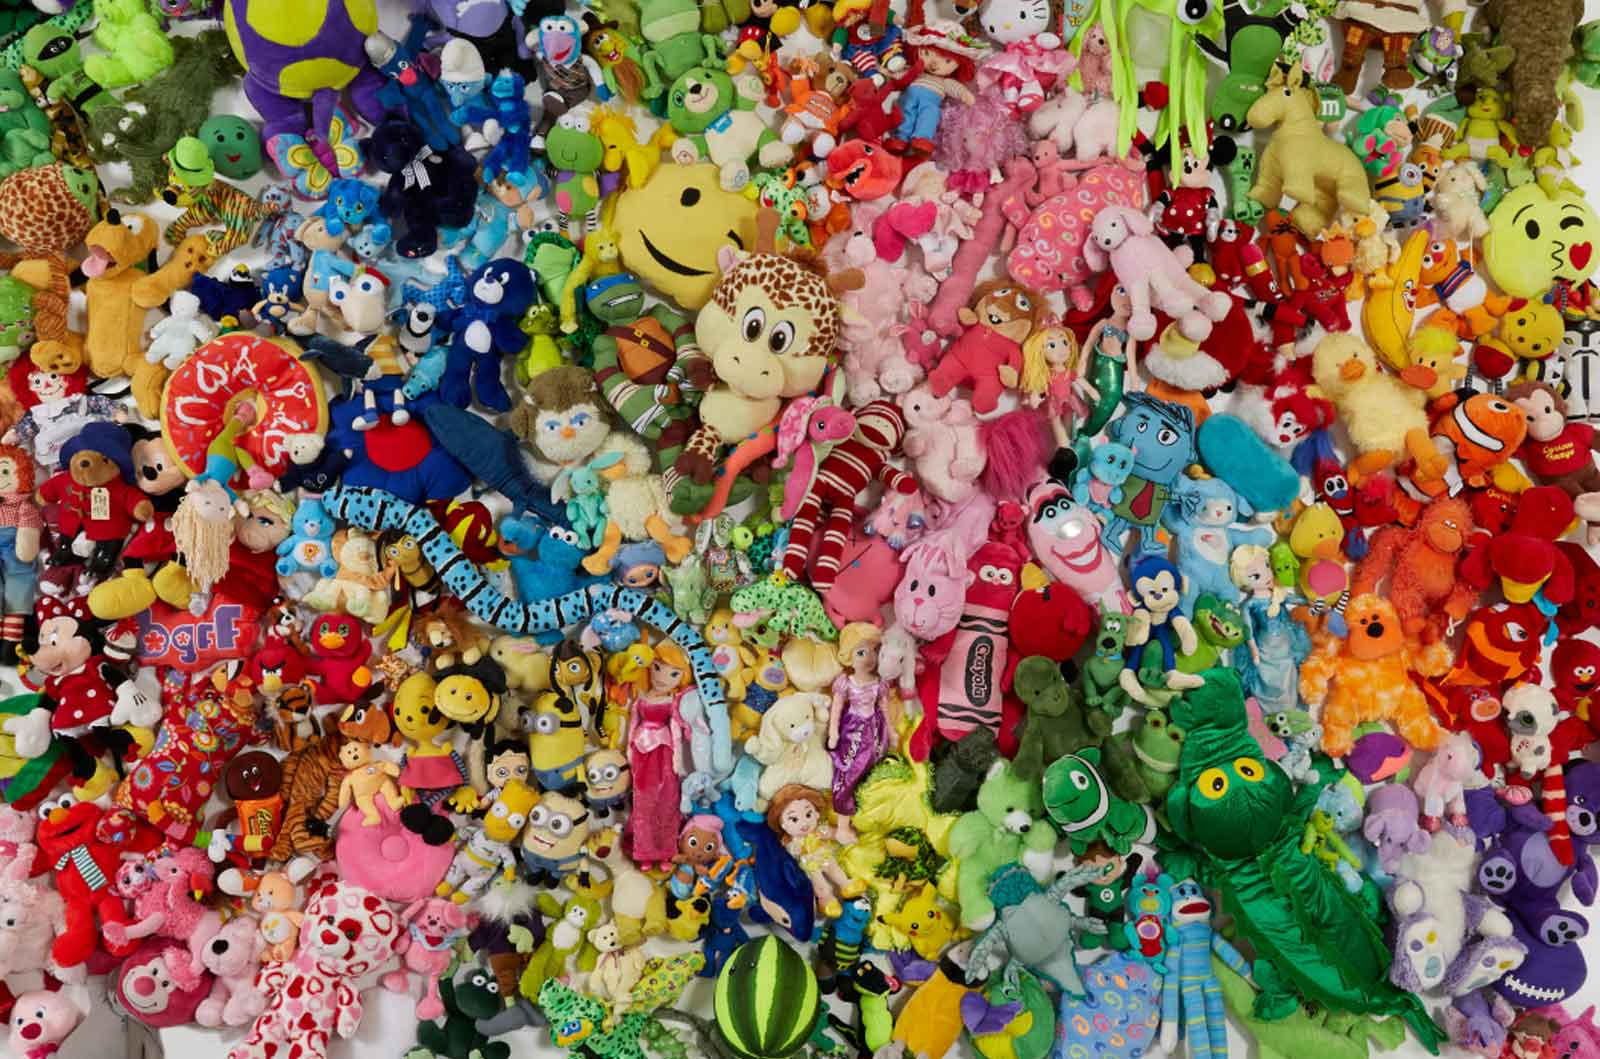 Many colorful stuffed animals